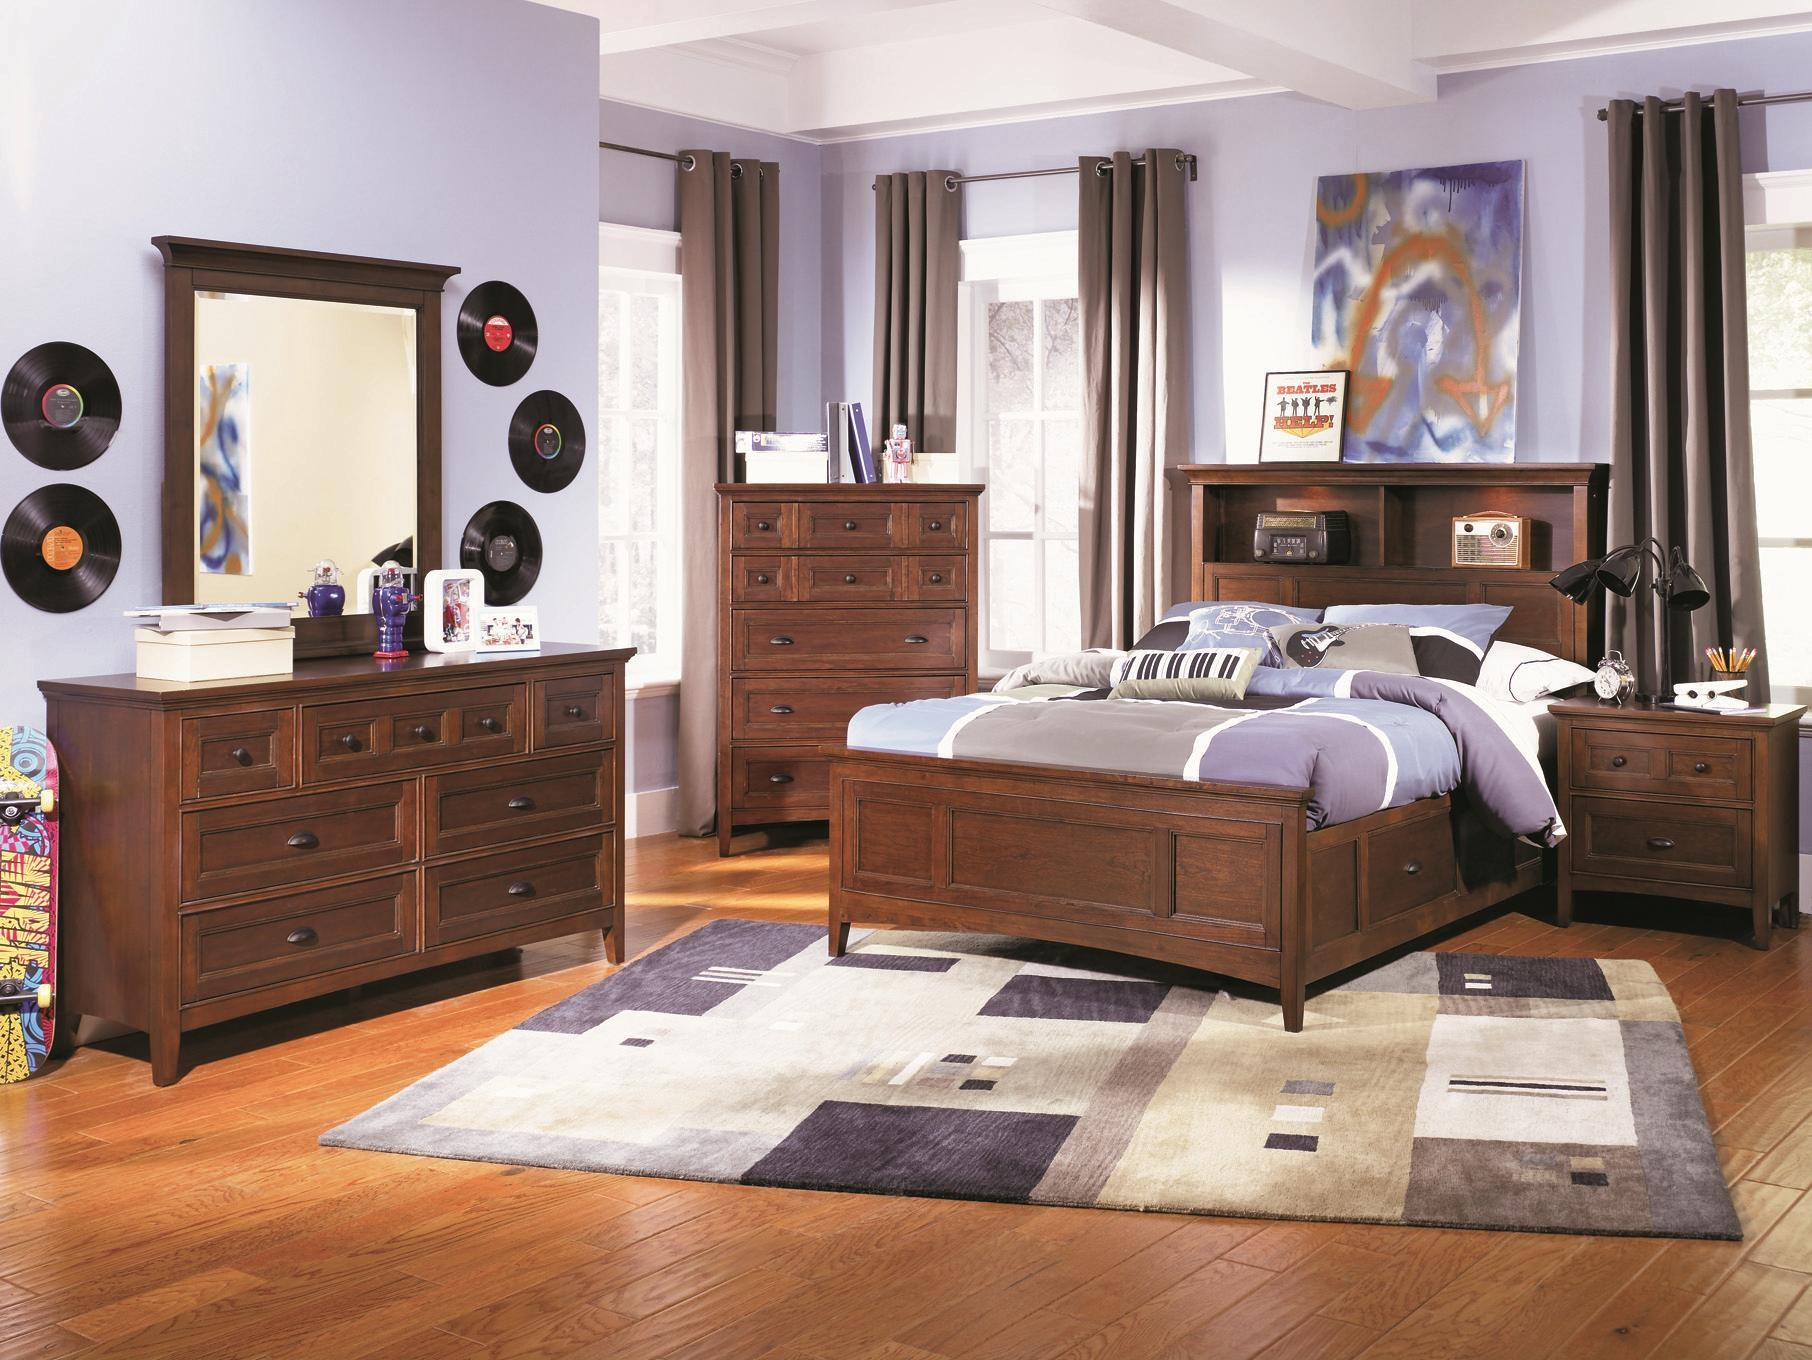 Next Generation By Magnussen Beck Cherry Bedroom Group